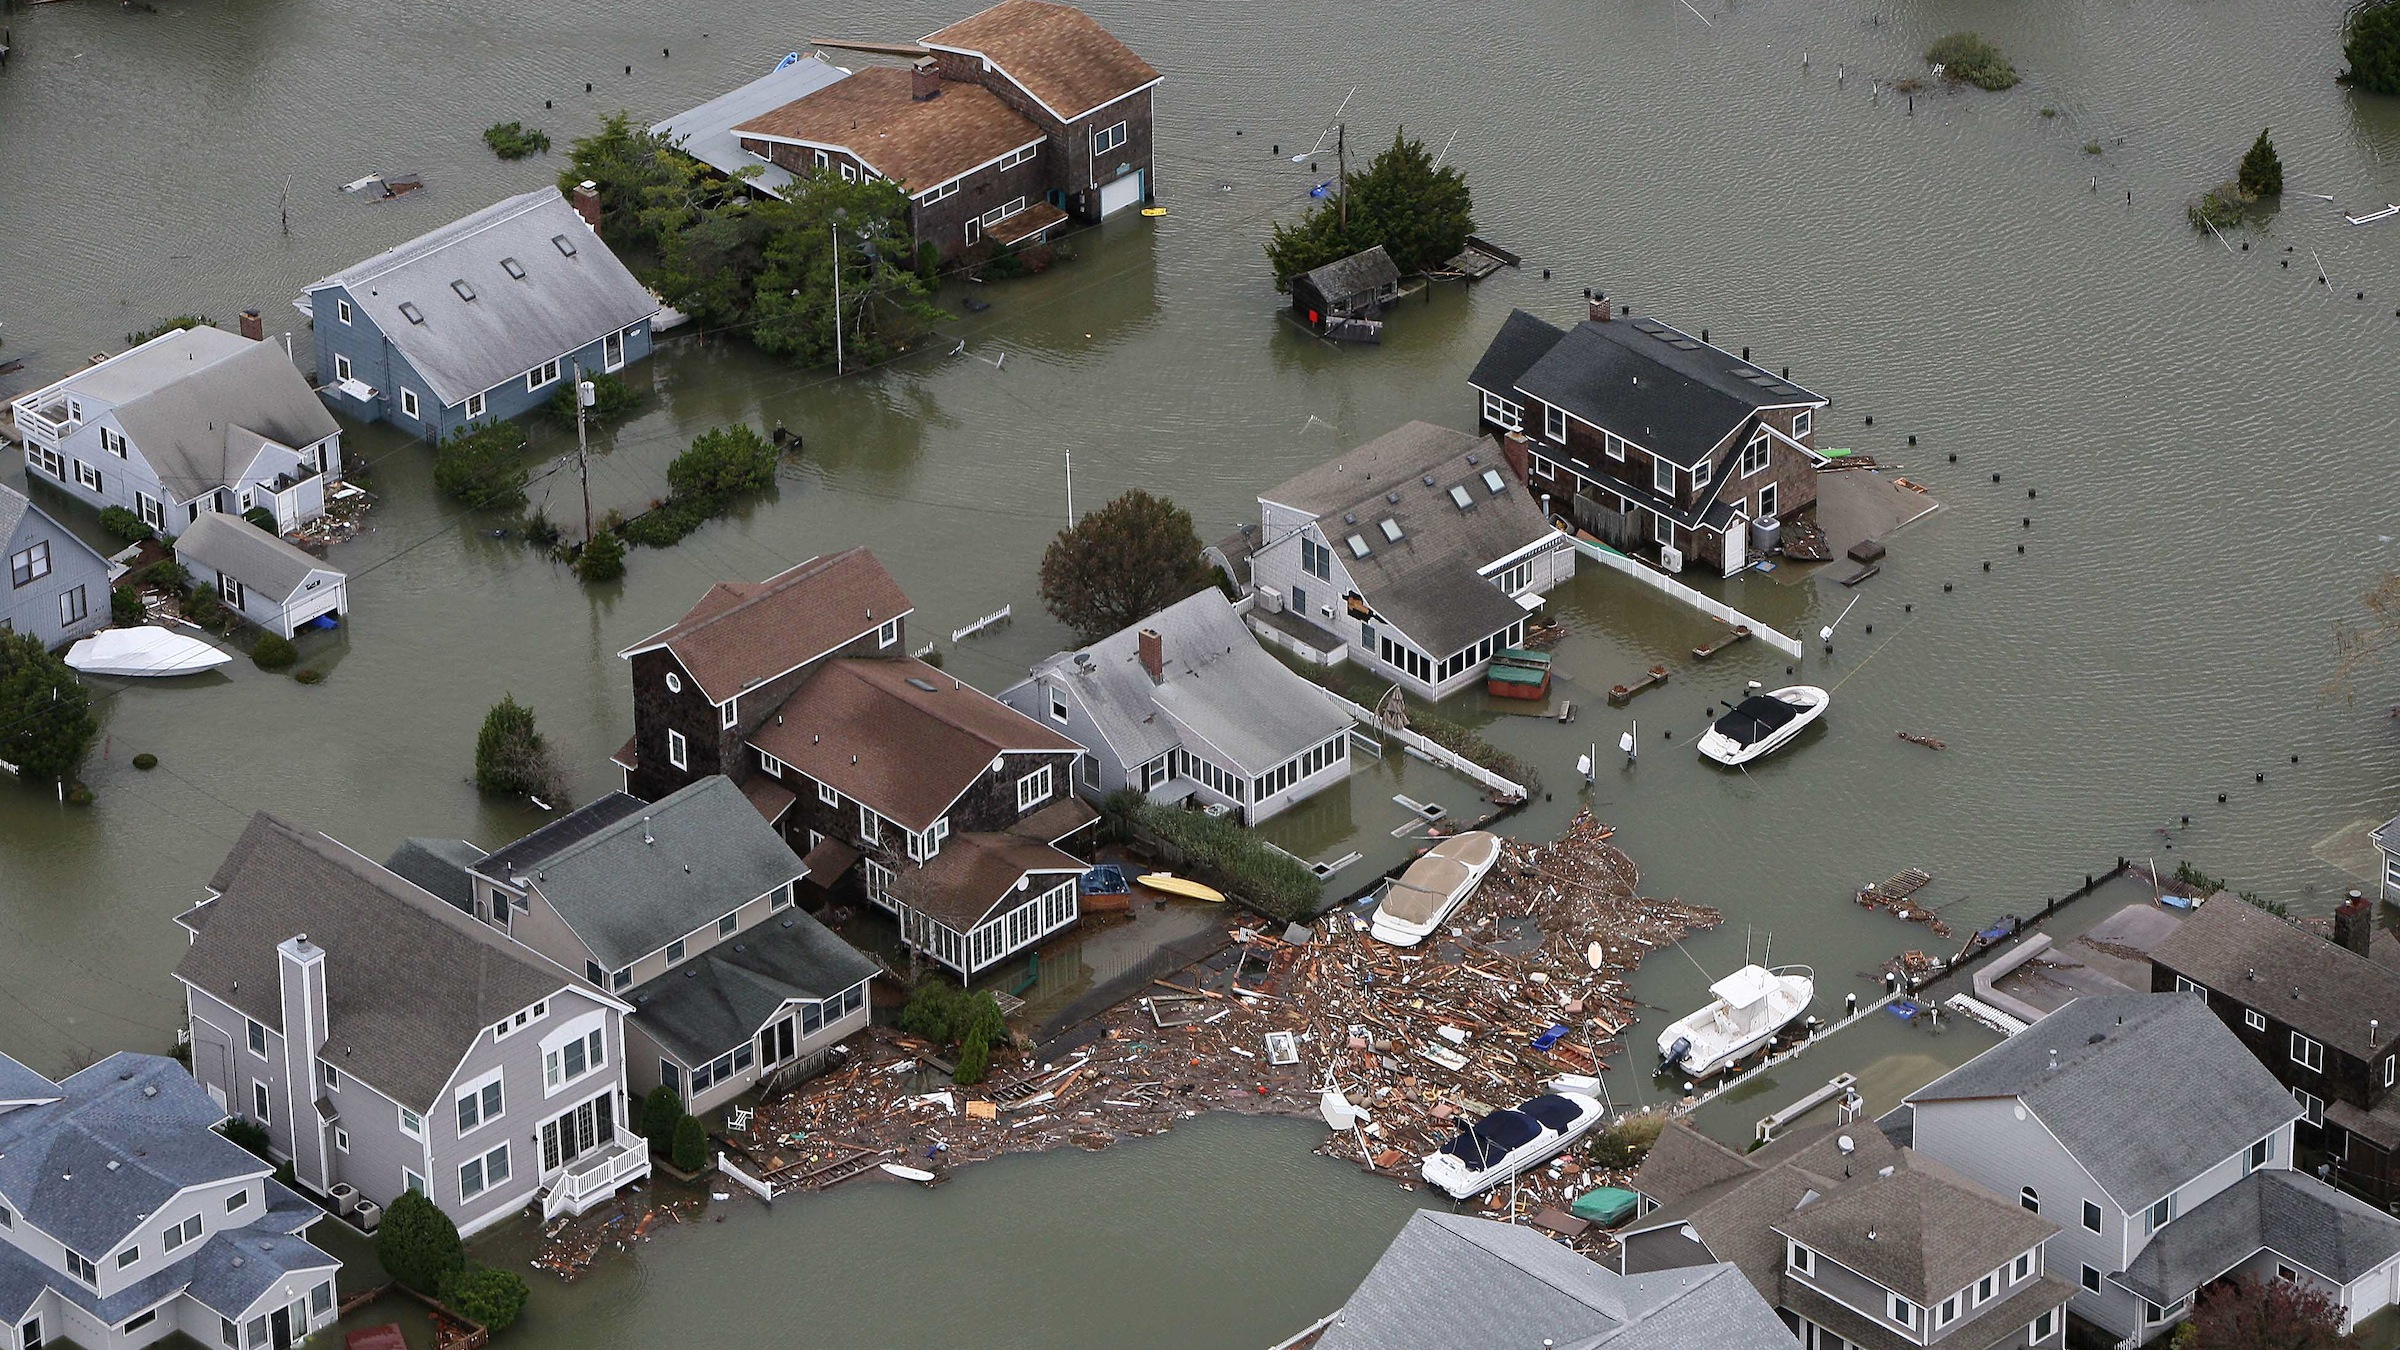 This photo made available by the New Jersey Governor's Office shows flooding and damage in Seaside, N.J. on Tuesday, Oct. 30, 2012 after superstorm Sandy made landfall in New Jersey Monday evening. (AP Photo/New Jersey Governor's Office, Tim Larsen)